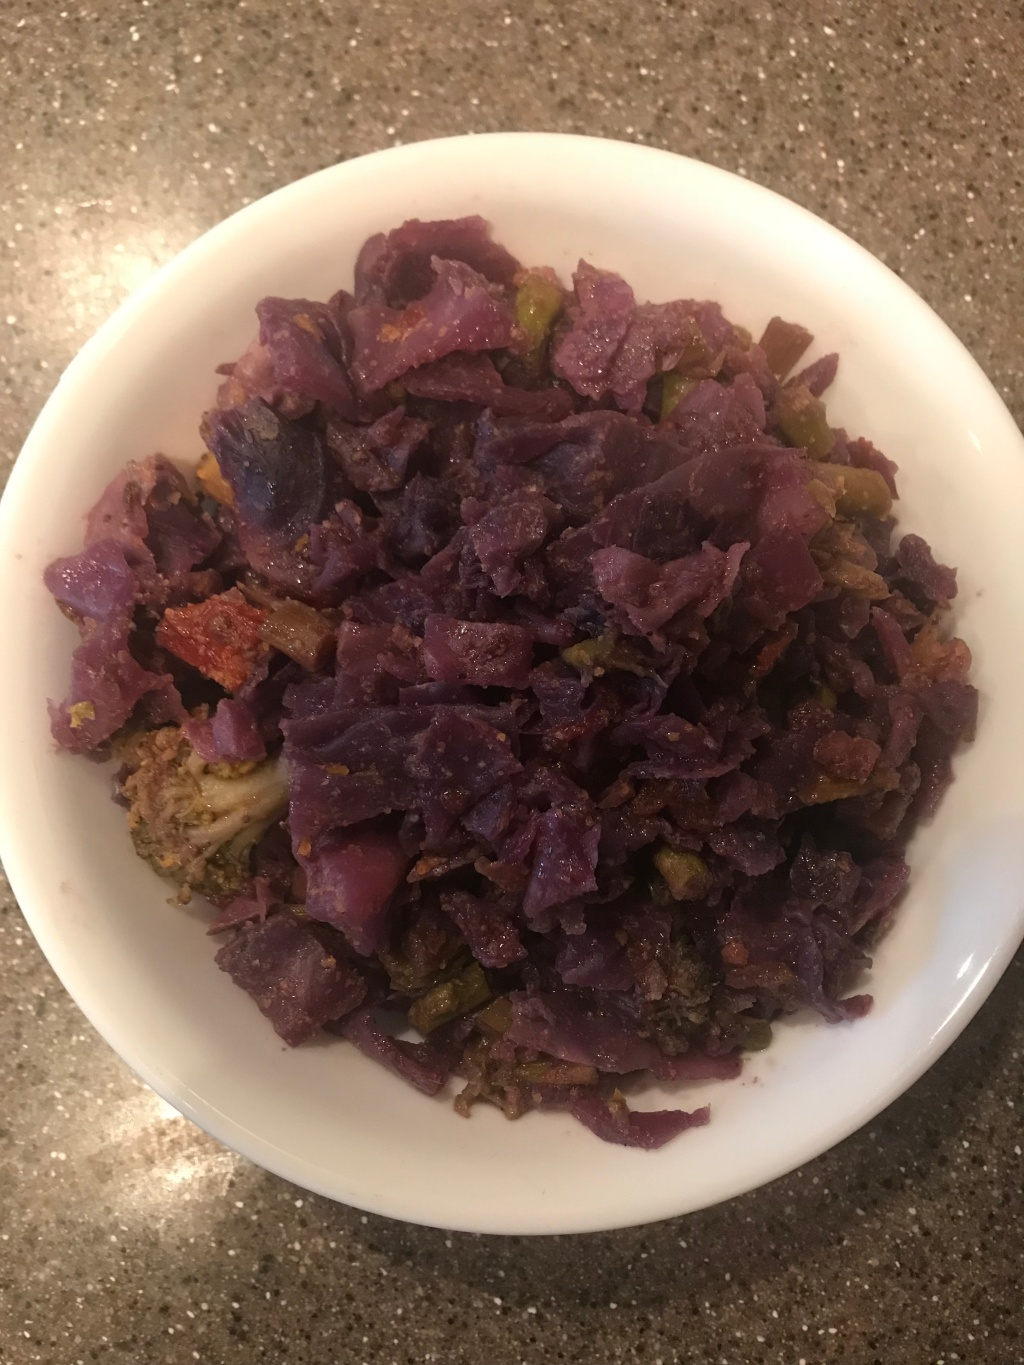 Purple cabbage and broccoli in a bowl